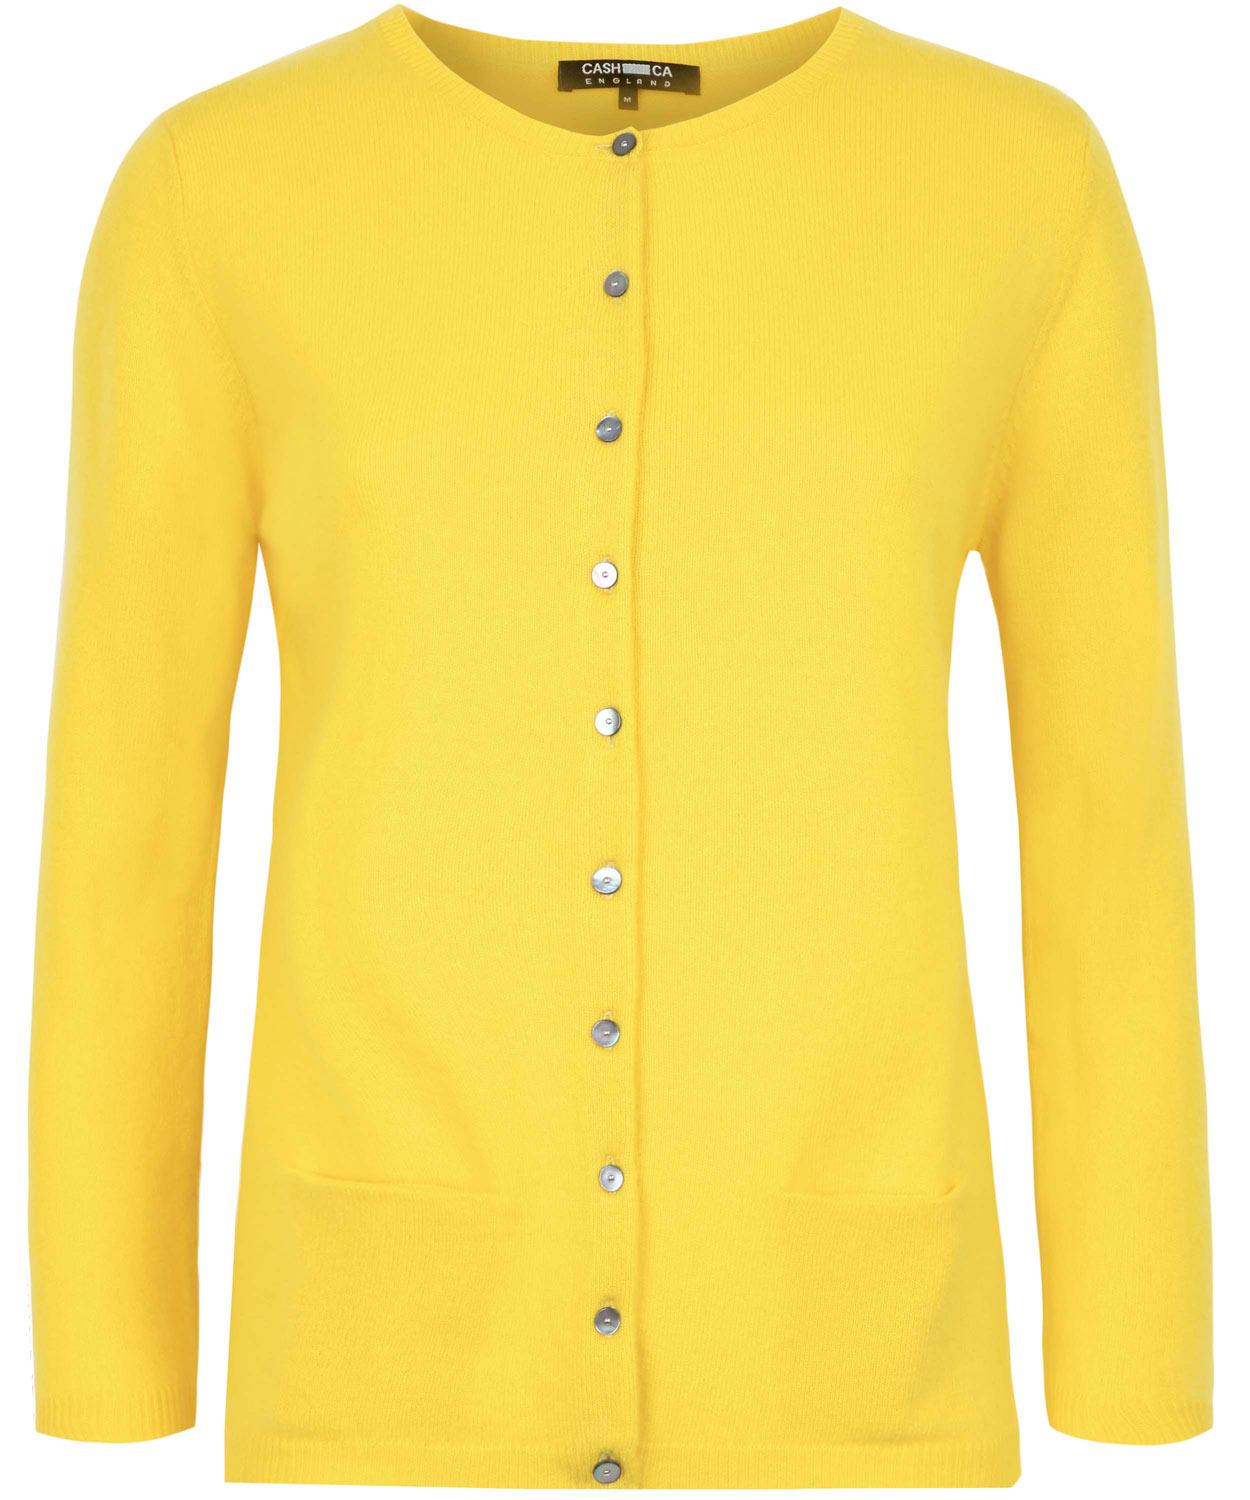 Cash ca Canary Yellow Cashmere Crew Neck Cardigan in Yellow | Lyst